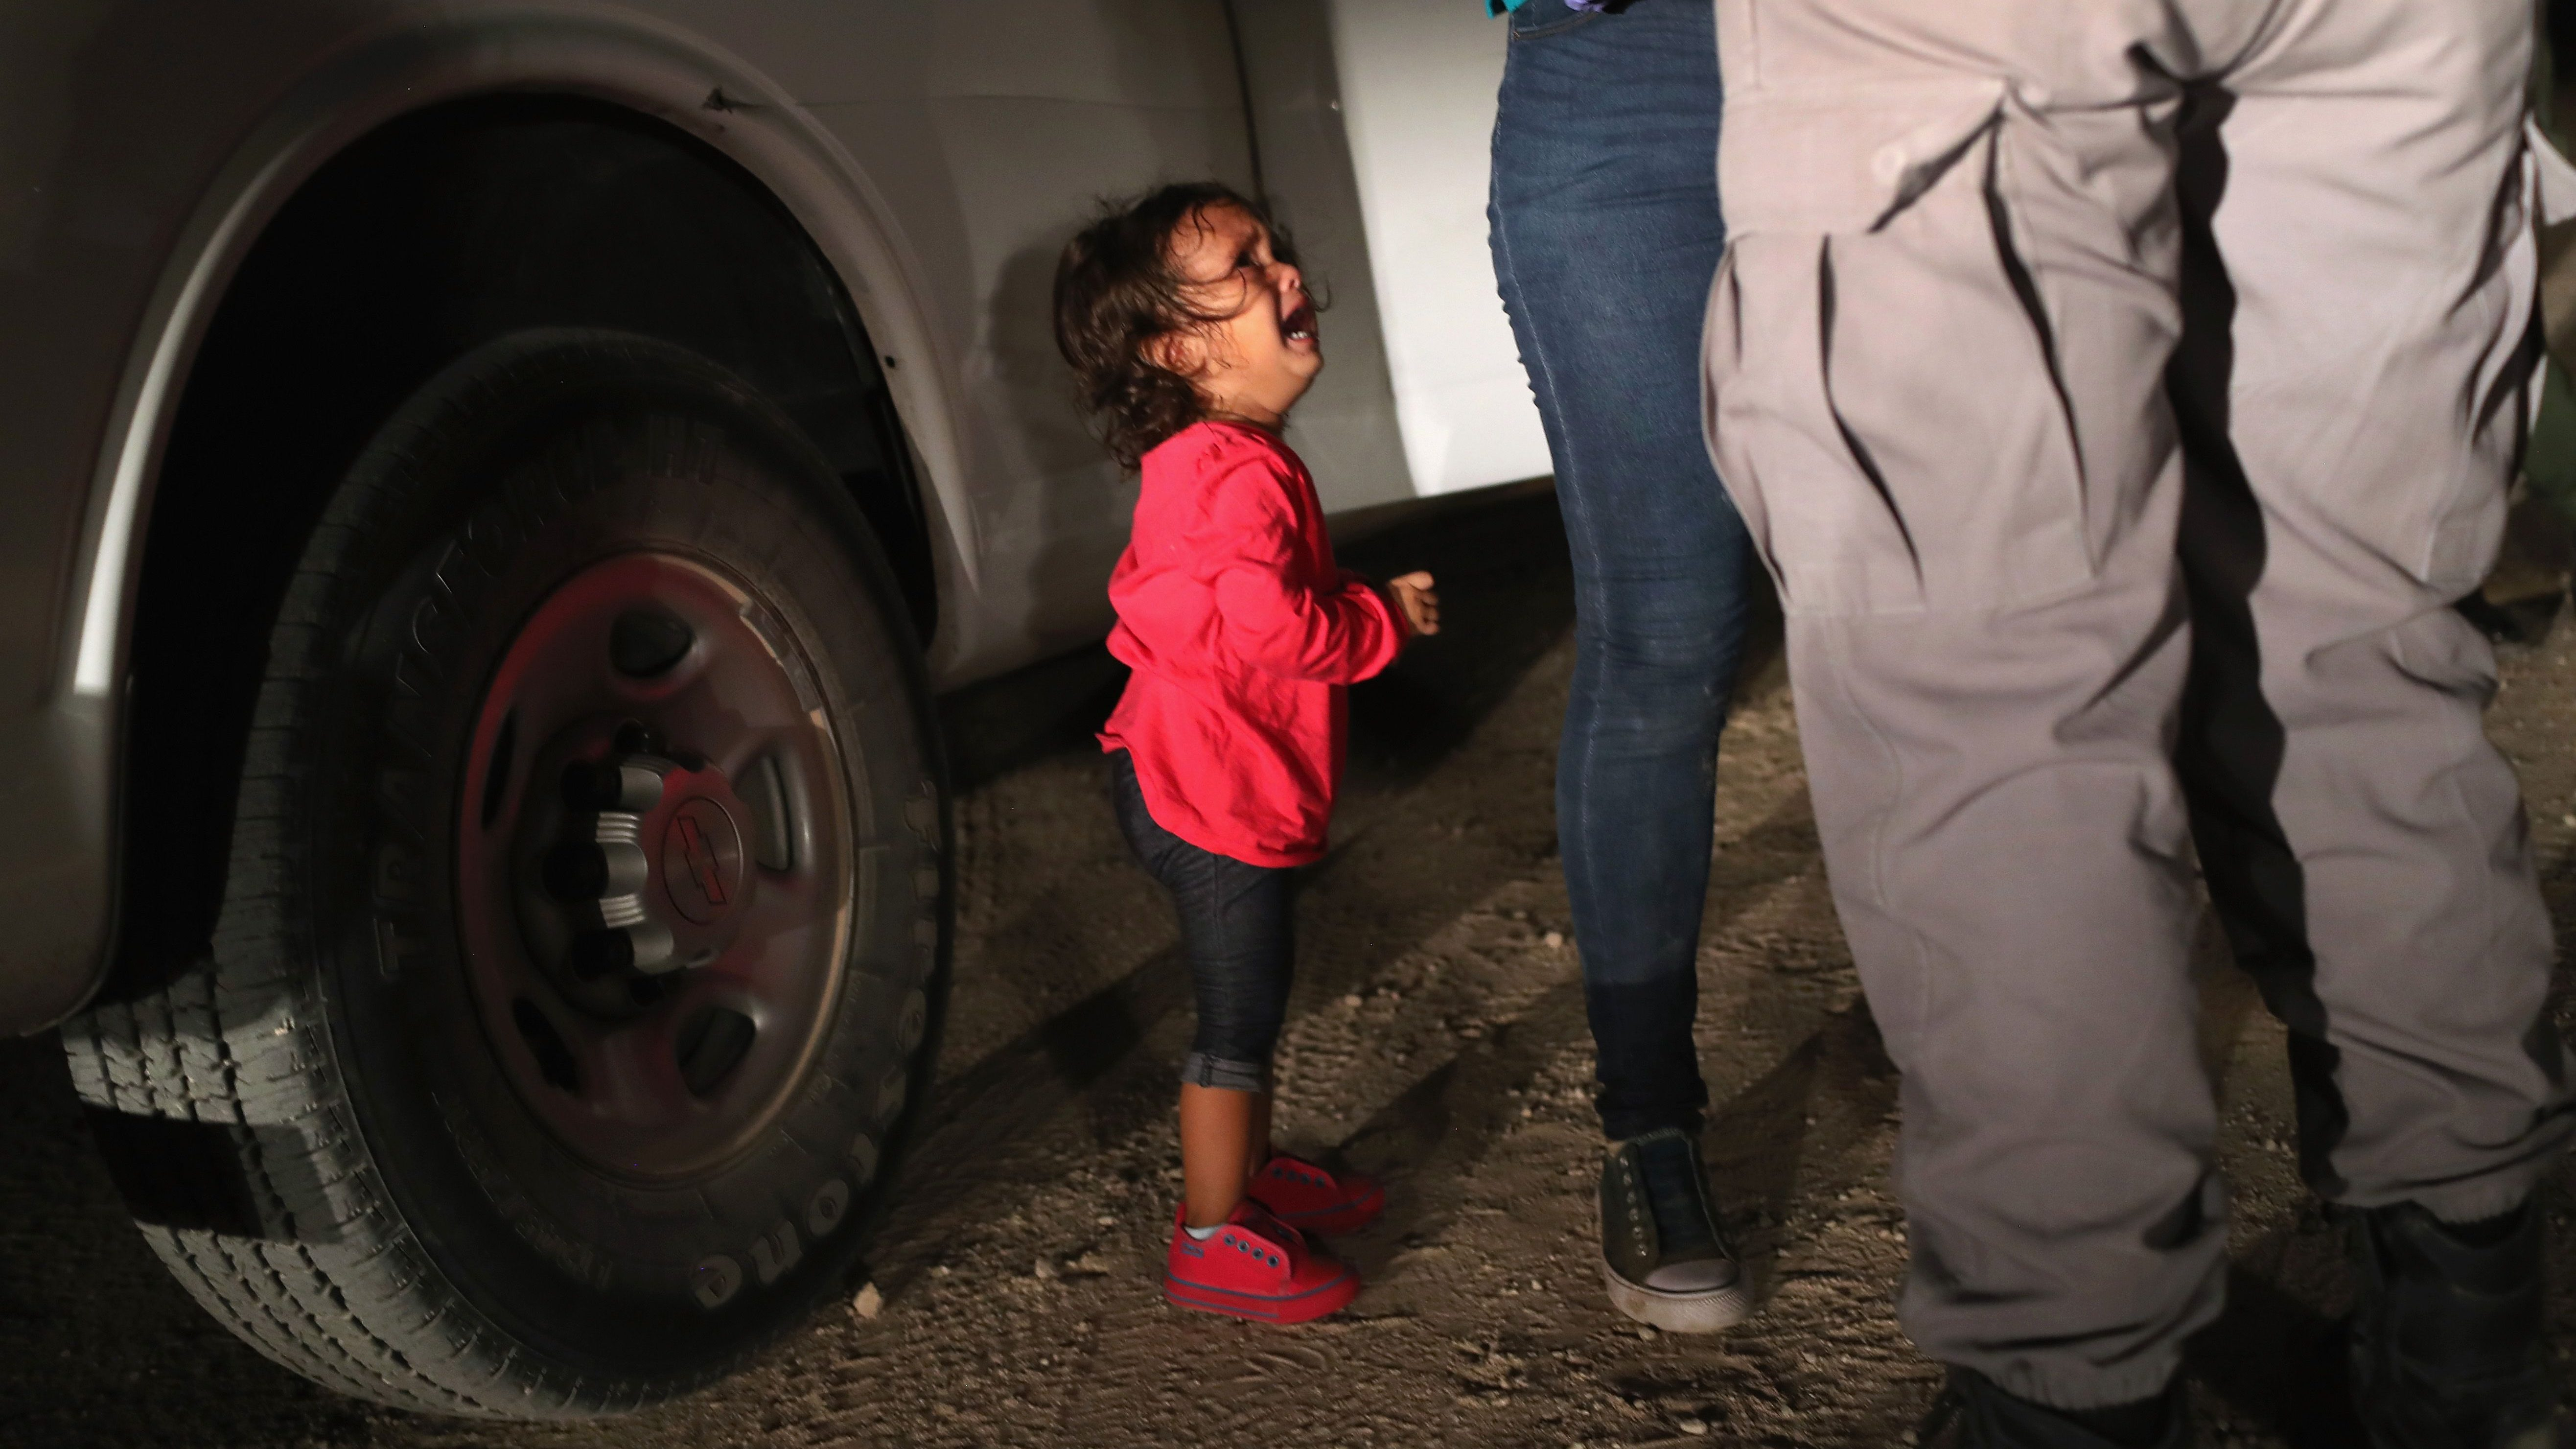 """MCALLEN, TX - JUNE 12: A two-year-old Honduran asylum seeker cries as her mother is searched and detained near the U.S.-Mexico border on June 12, 2018 in McAllen, Texas. The asylum seekers had rafted across the Rio Grande from Mexico and were detained by U.S. Border Patrol agents before being sent to a processing center for possible separation. Customs and Border Protection (CBP) is executing the Trump administration's """"zero tolerance"""" policy towards undocumented immigrants. US Attorney General Jeff Sessions also said that domestic and gang violence in immigrants' country of origin would no longer qualify them for political asylum status."""